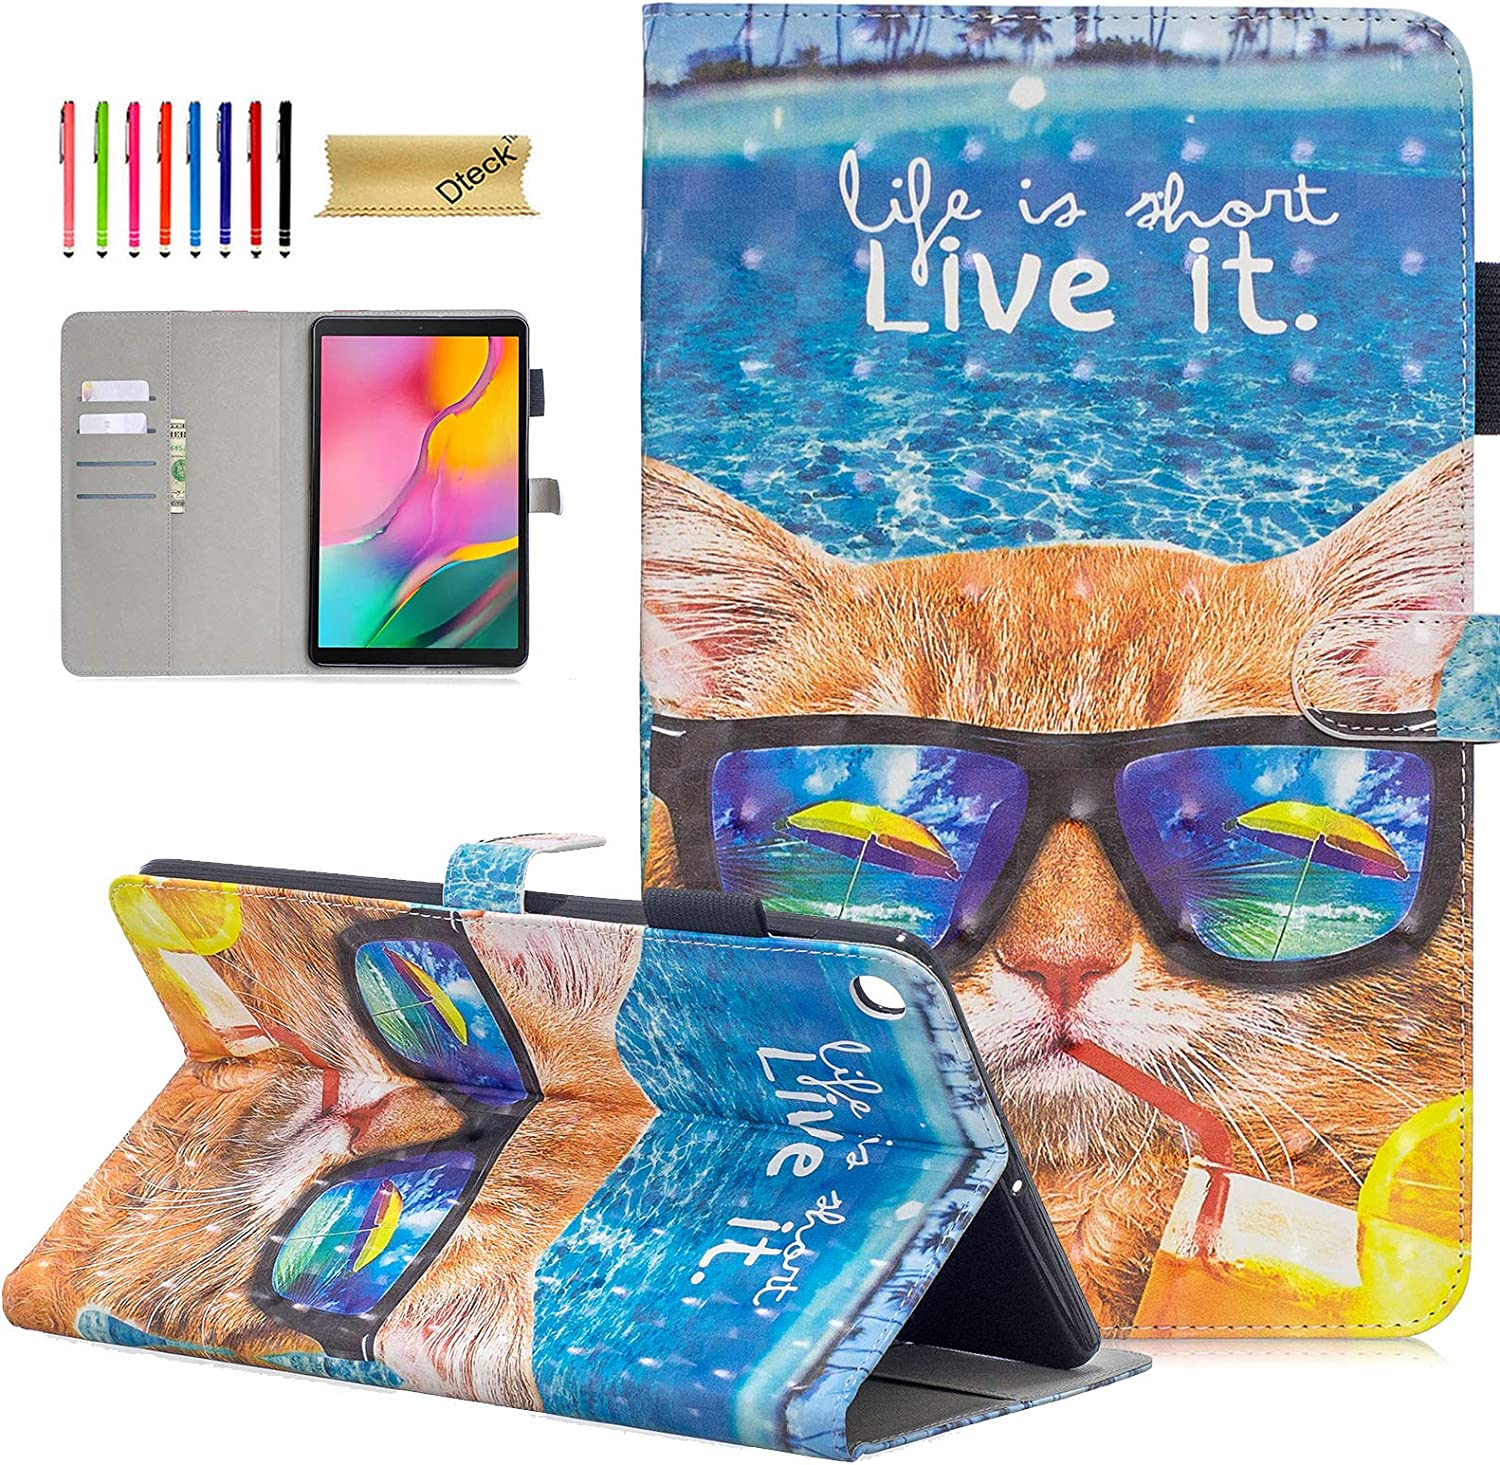 SM-T510 Case for Samsung Galaxy Tab A 10.1 Inch 2019 Model, Dteck 3D Glitter Design Slim Fit PU Leather Folio Stand Case with Card Slot/Pencil Holder Magnetic Protective Case, Cool Cat